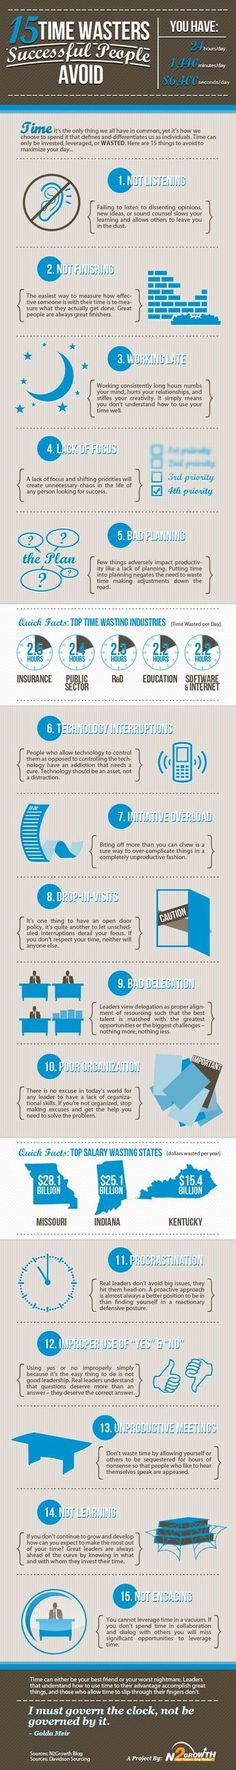 15 Time Wasters Succesful People Avoid #Infographic